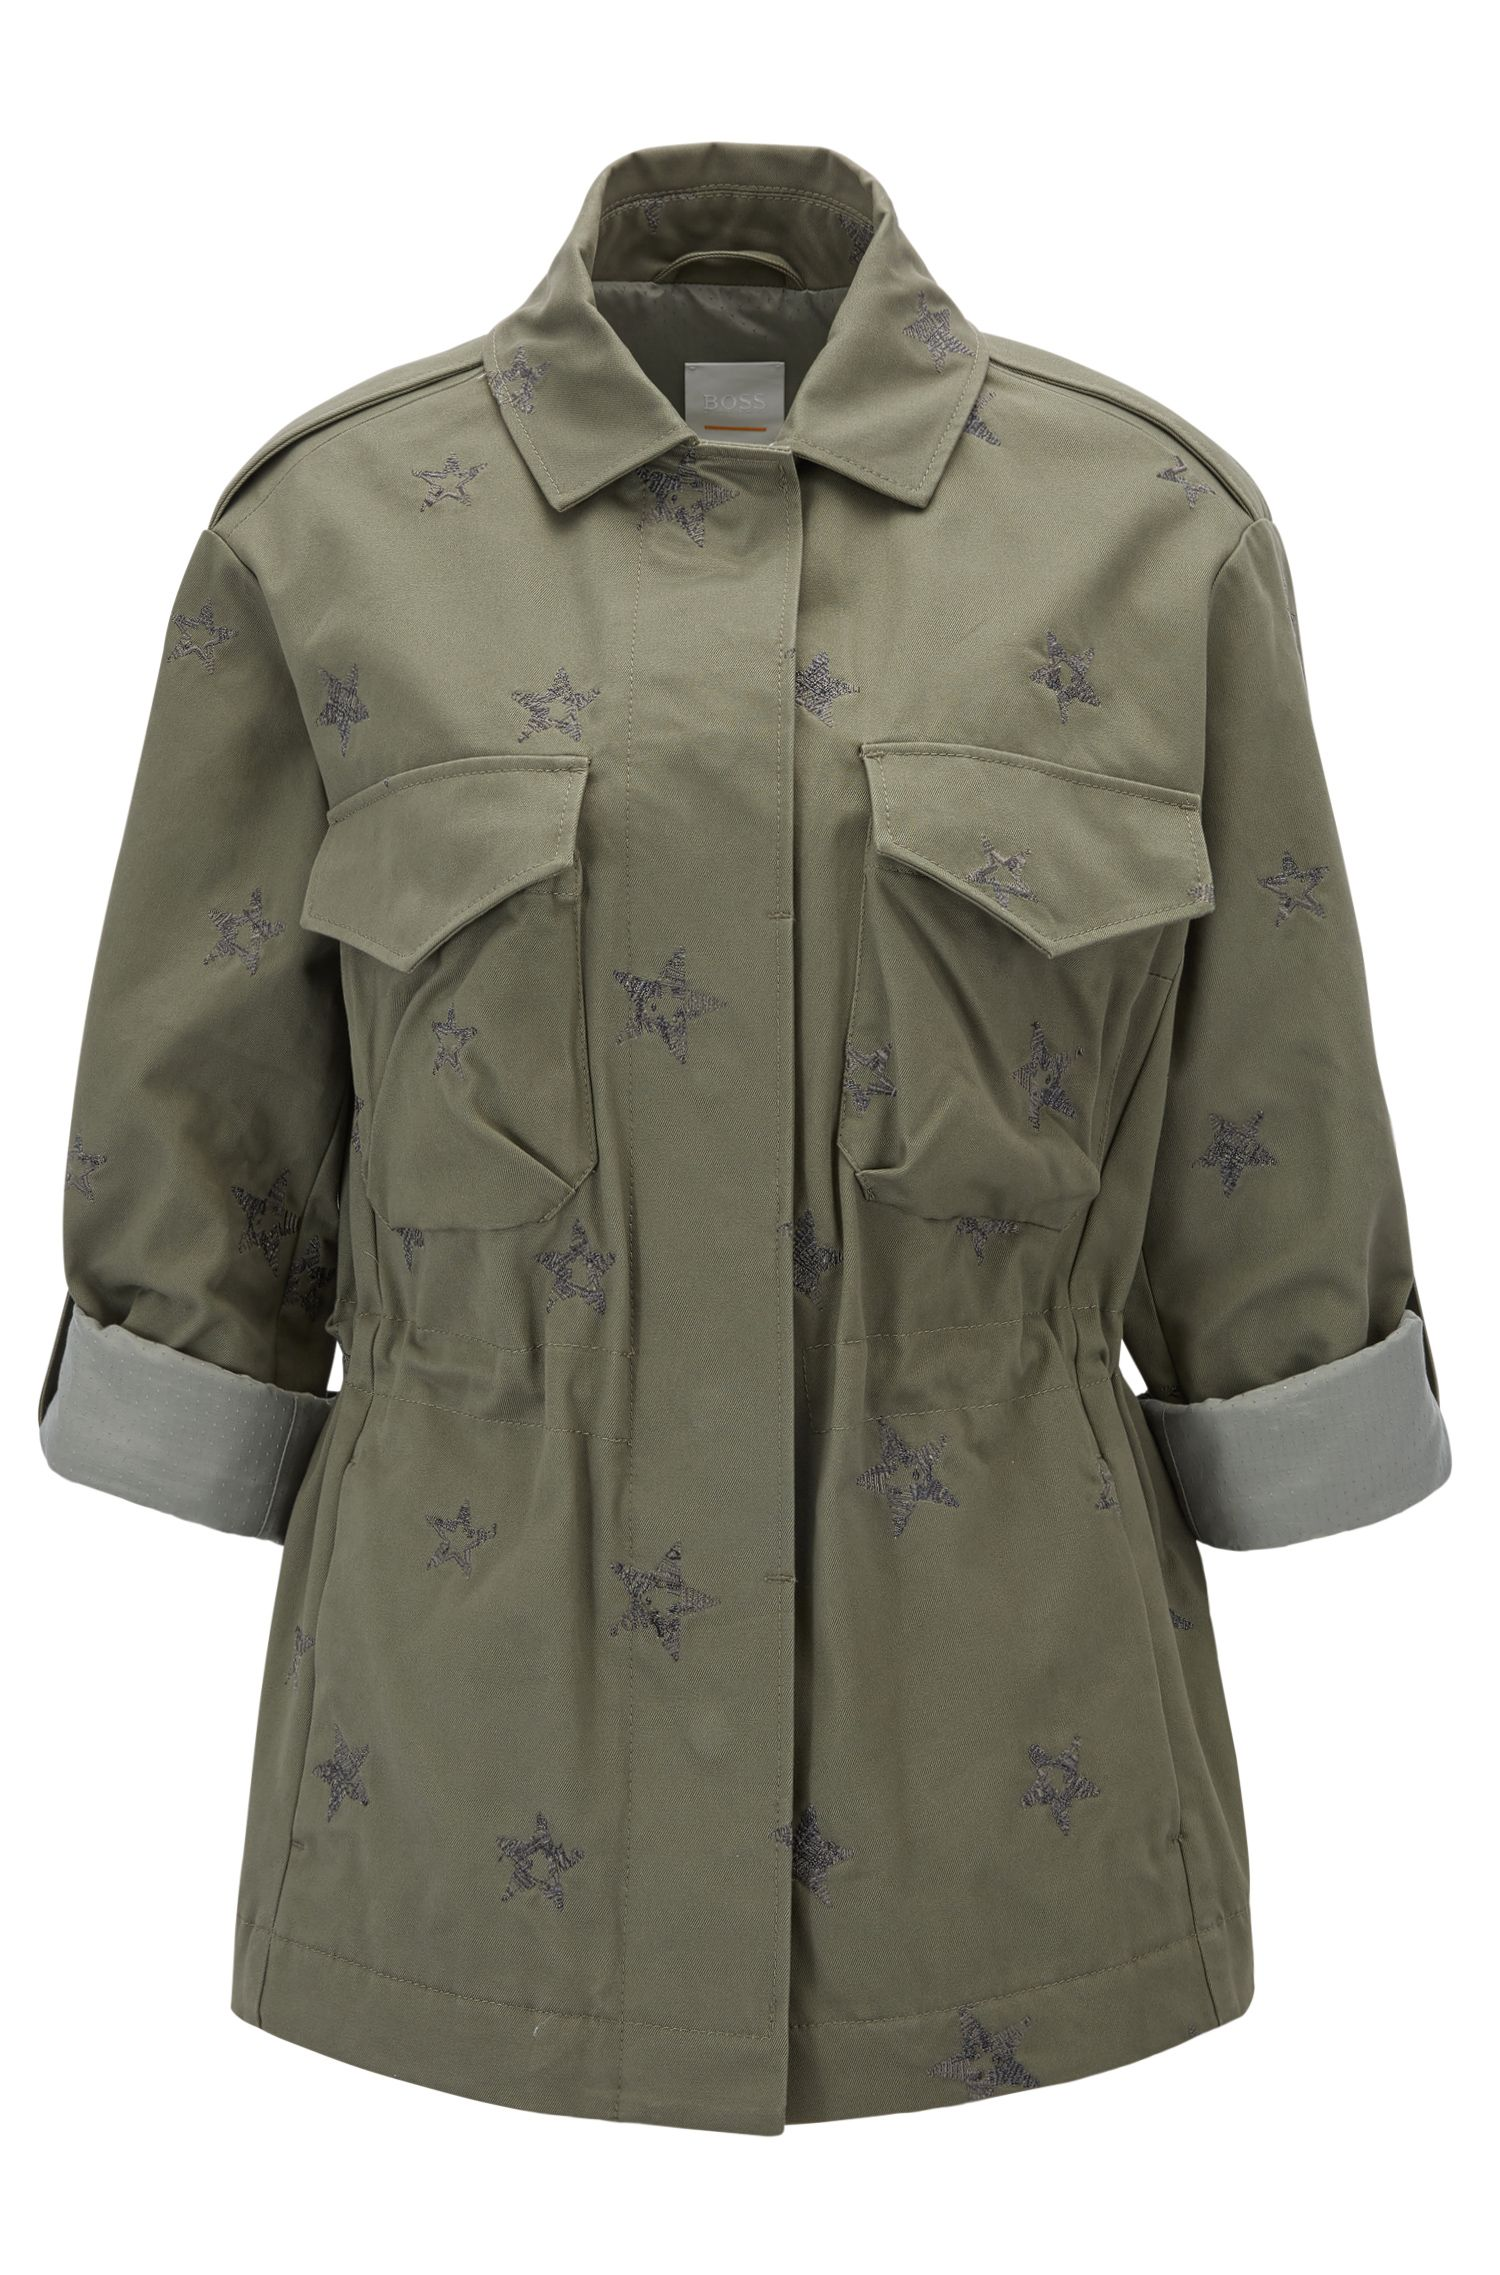 Embroidered star-motif cotton shirt jacket in a regular fit